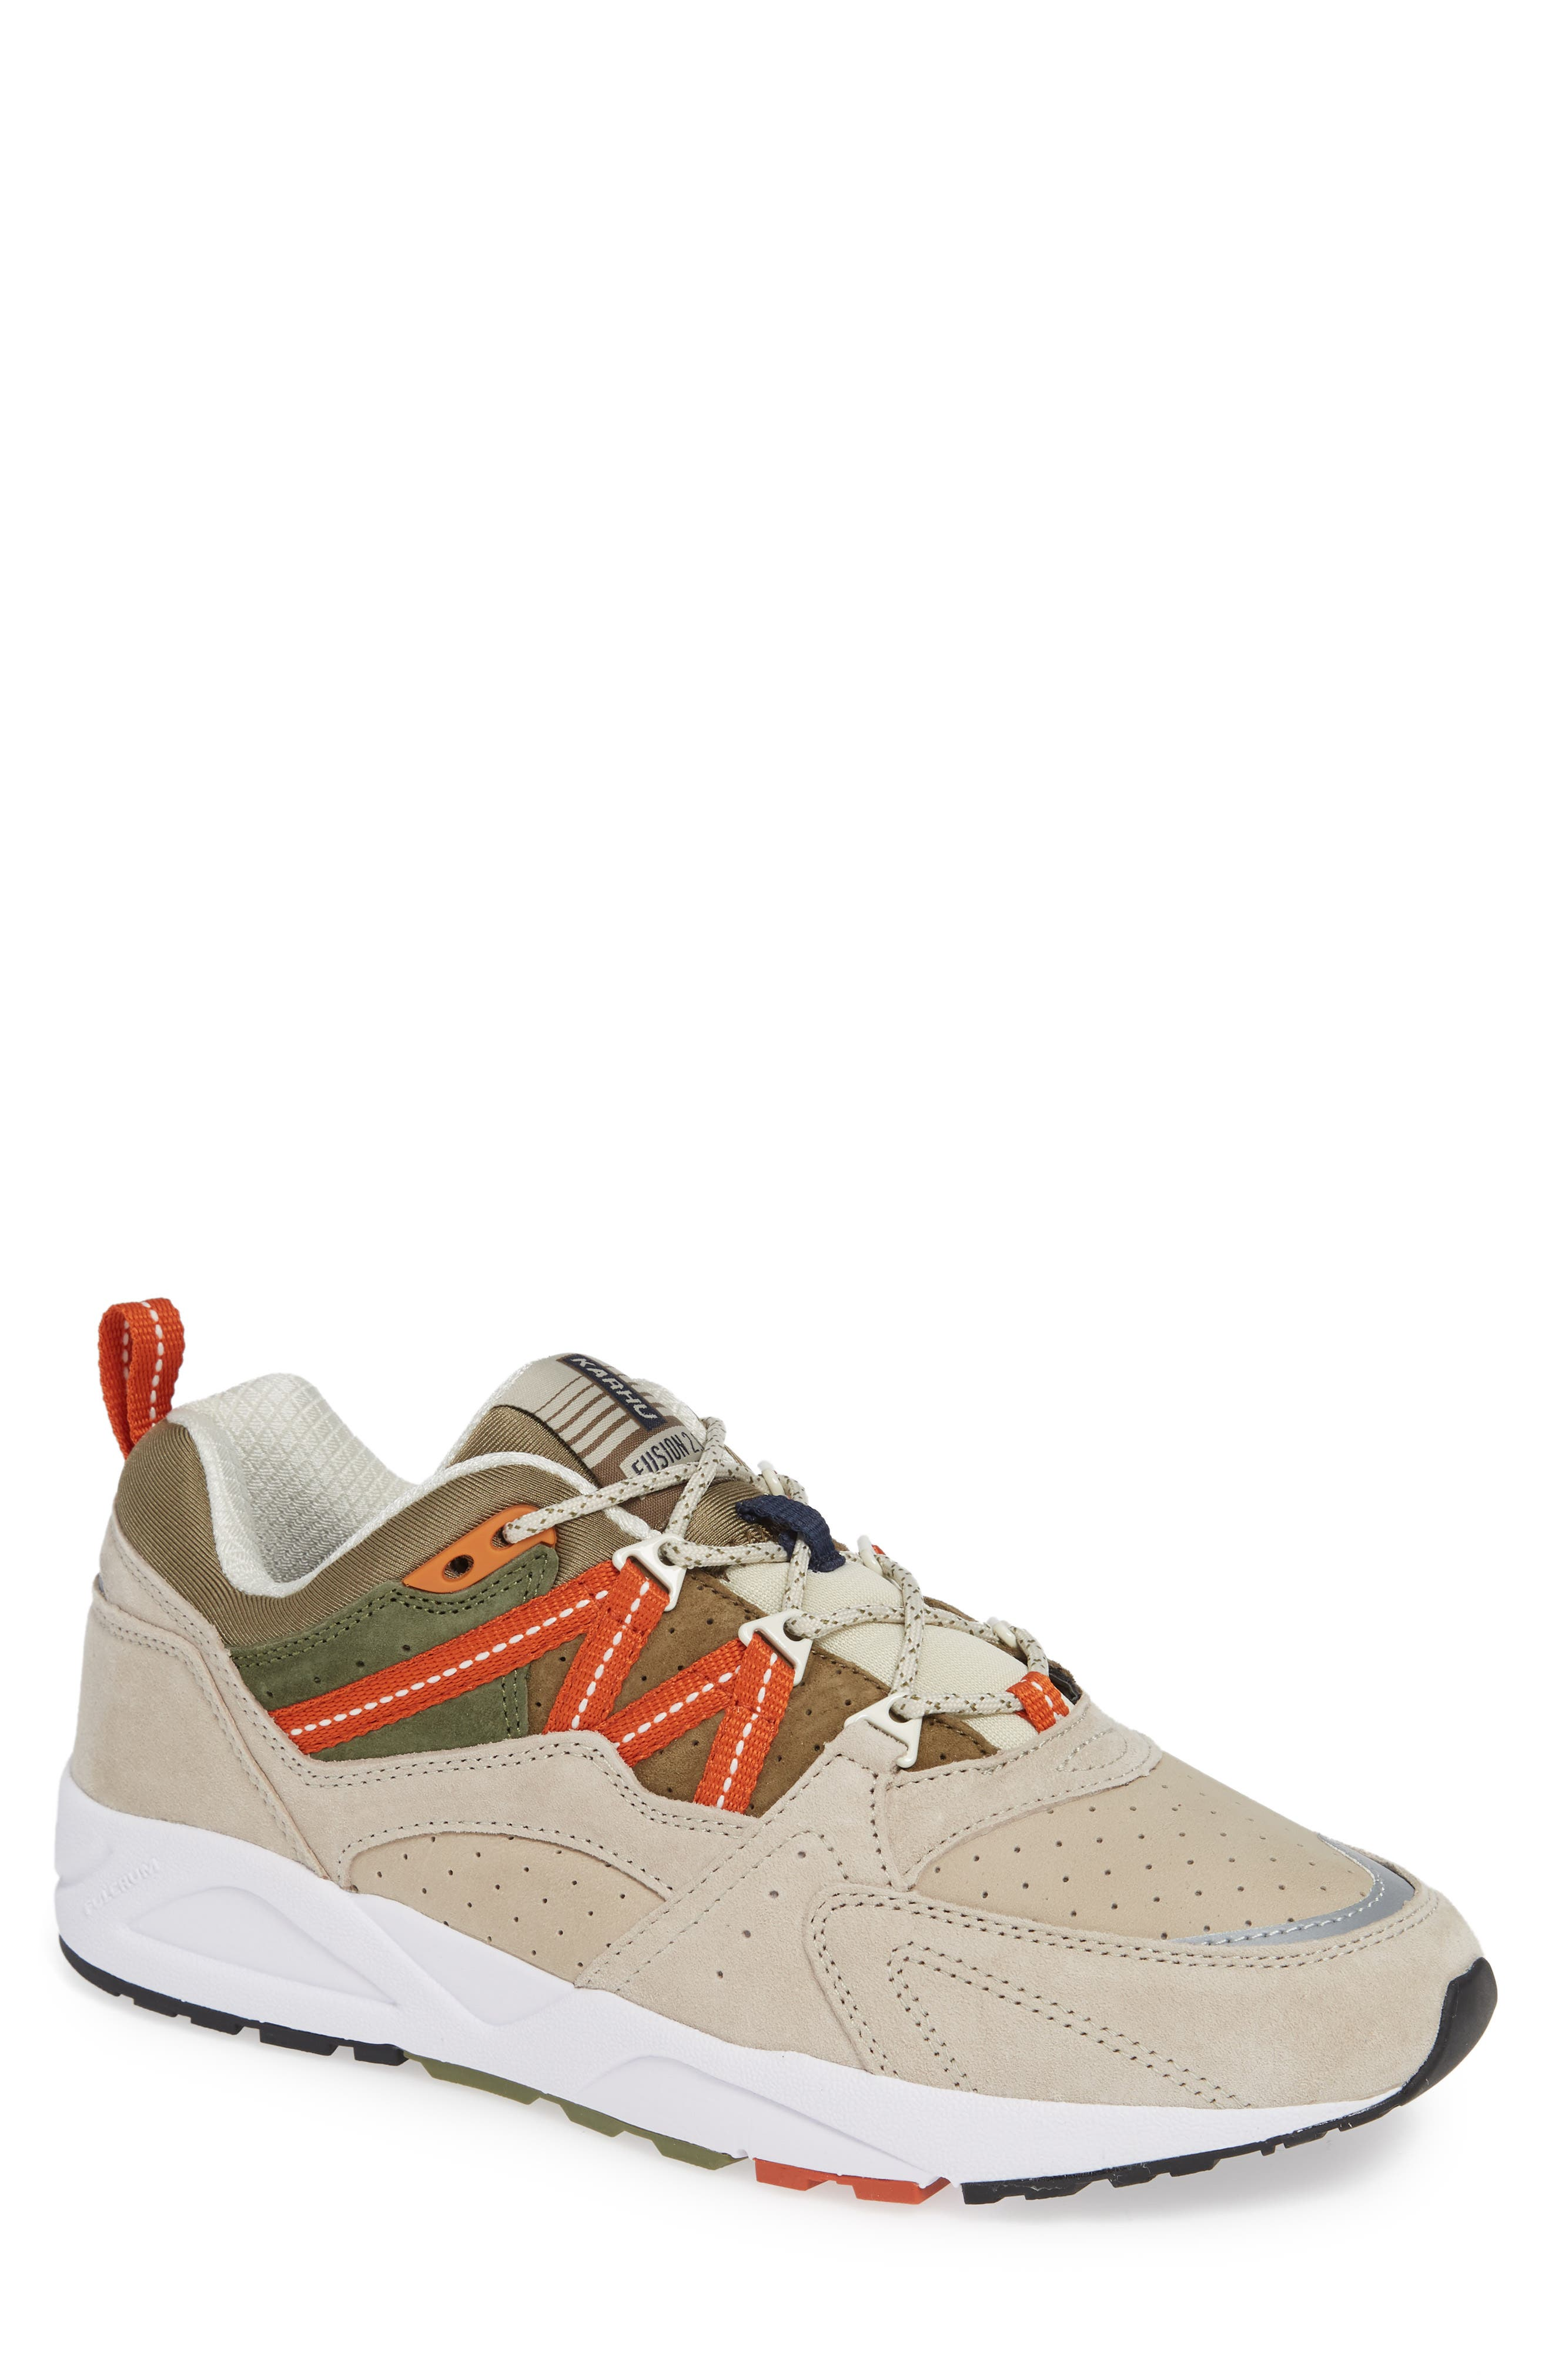 Fusion 2.0 Sneaker,                         Main,                         color, PEYOTE / MILITARY OLIVE